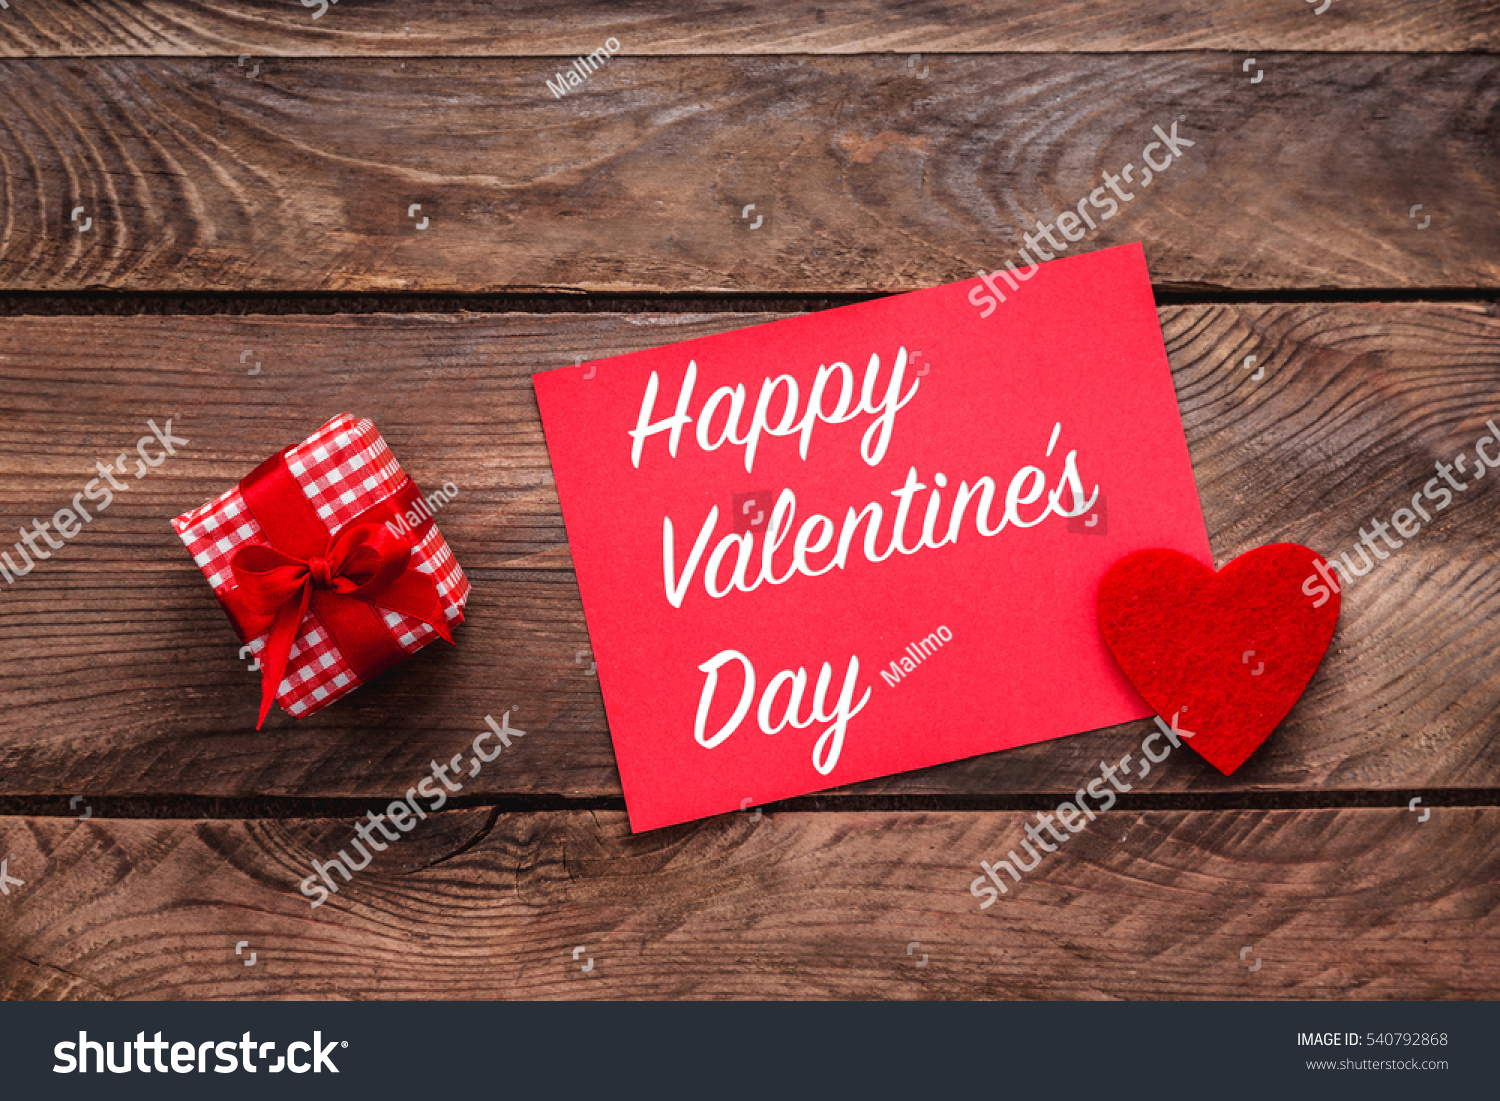 Valentines day greeting card small gift stock photo 540792868 valentines day greeting card and small gift heart decoration over wooden background valentines greetings negle Gallery